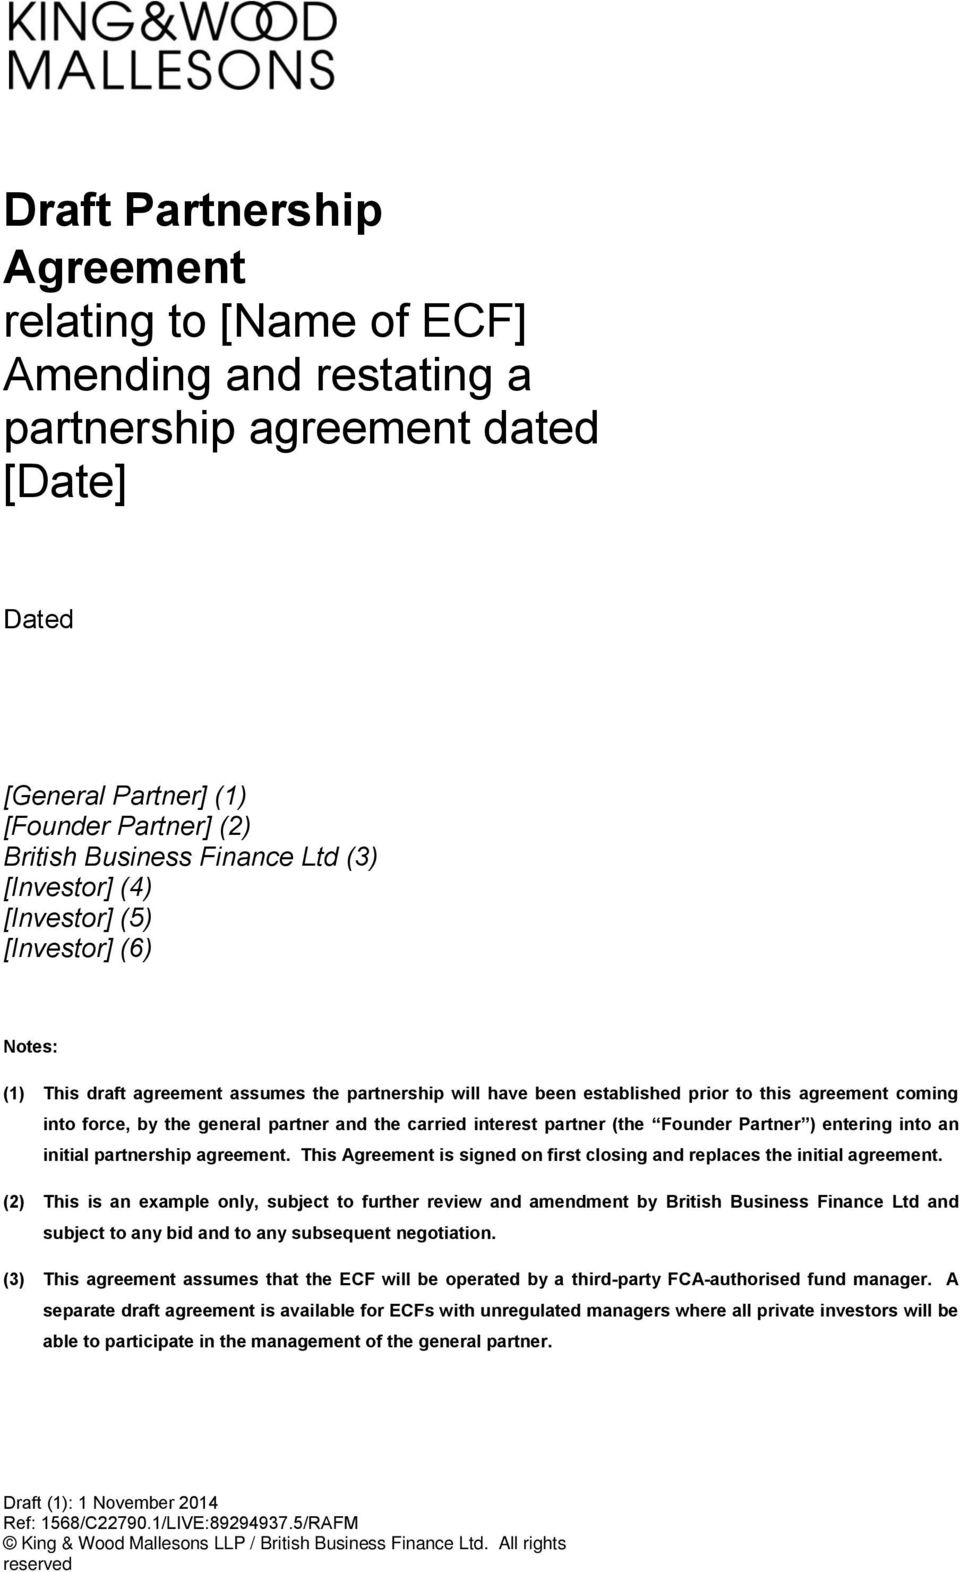 Draft Partnership Agreement Relating To Name Of Ecf Amending And